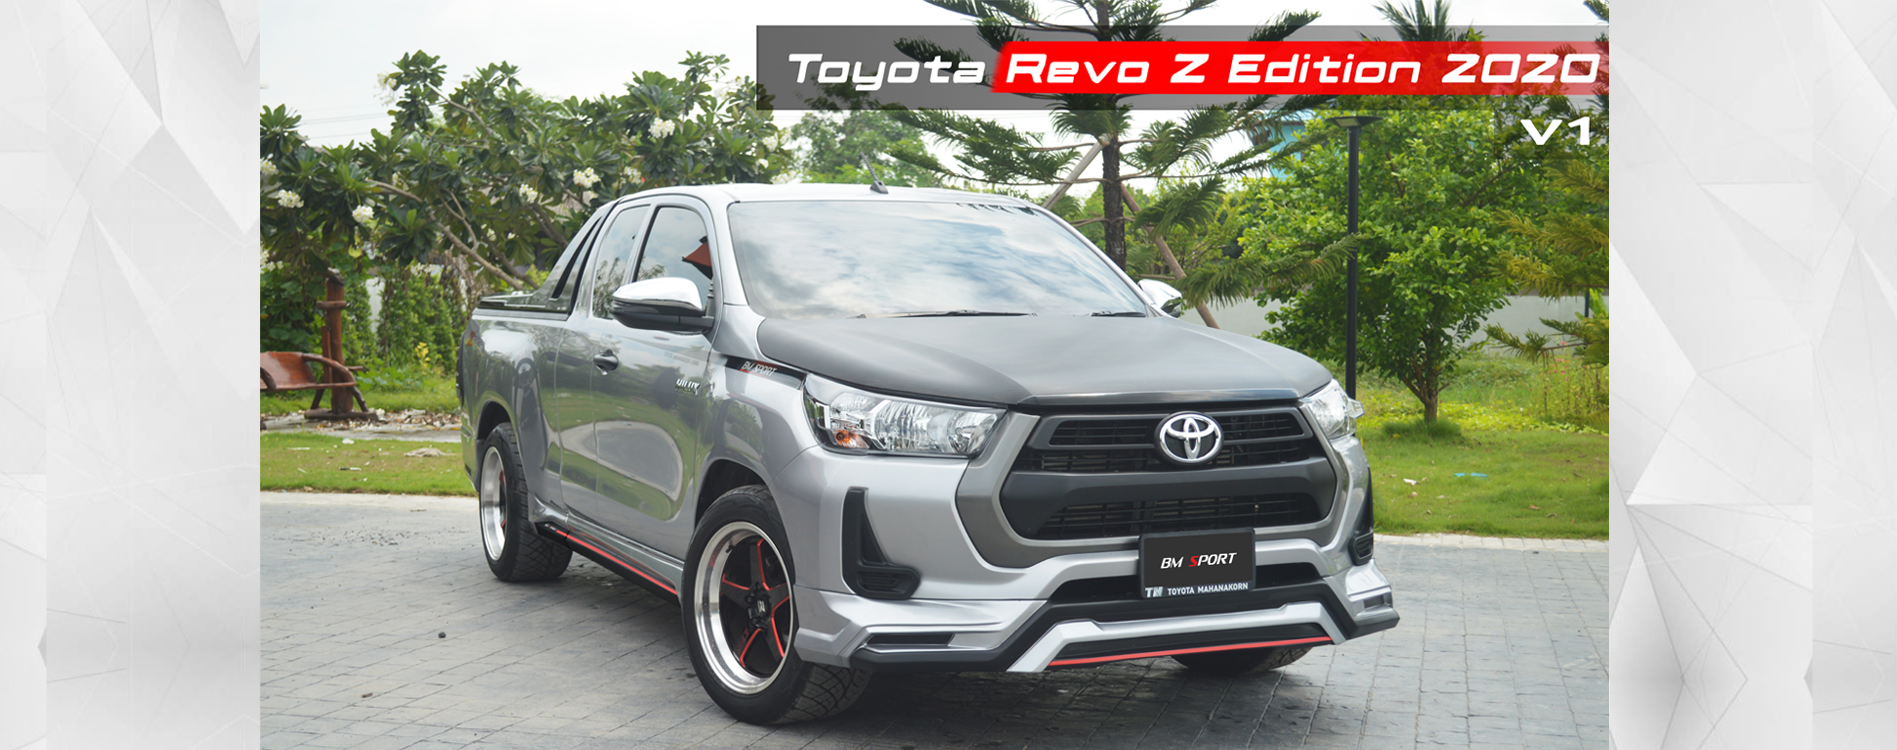 ALL NEW  REVO Z EDITION 2020 V1